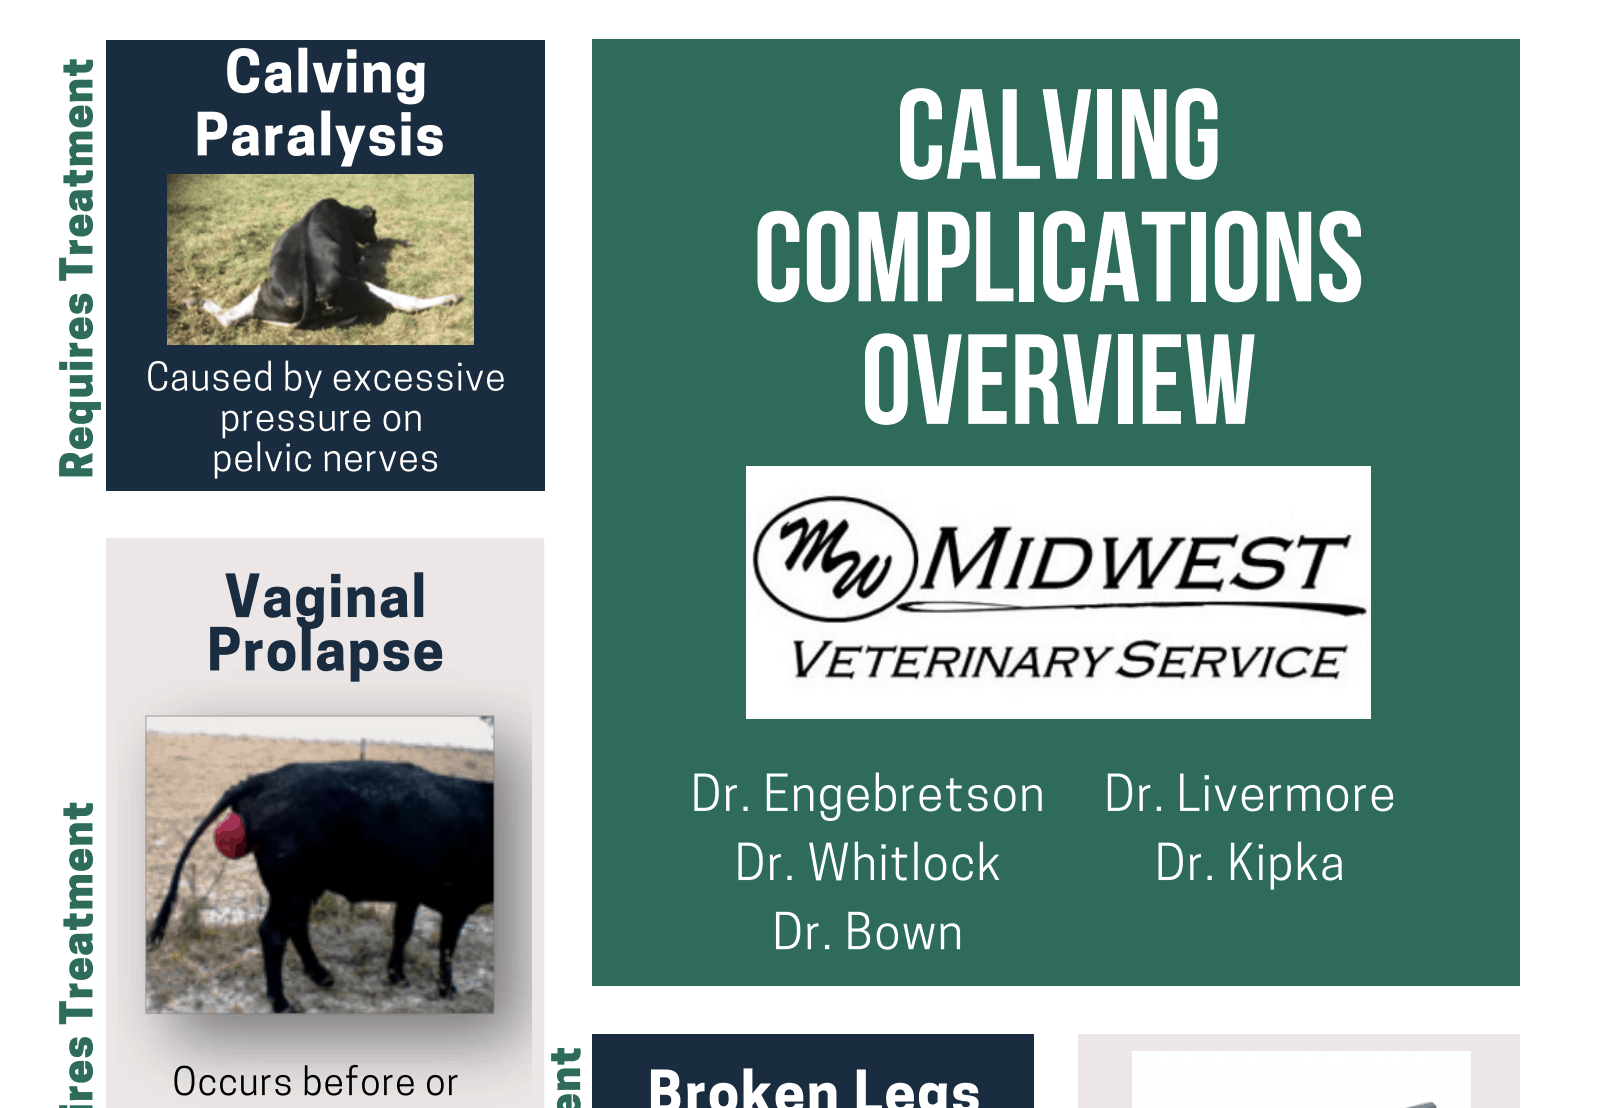 Midwest Veterinary Services | Your source for quality vet services, for both companion and production animals. Serving the Tri-State area of Iowa, Minnesota, South Dakota, and surrounding areas. We also offer a great selection of online veterinary supplies in our online store.